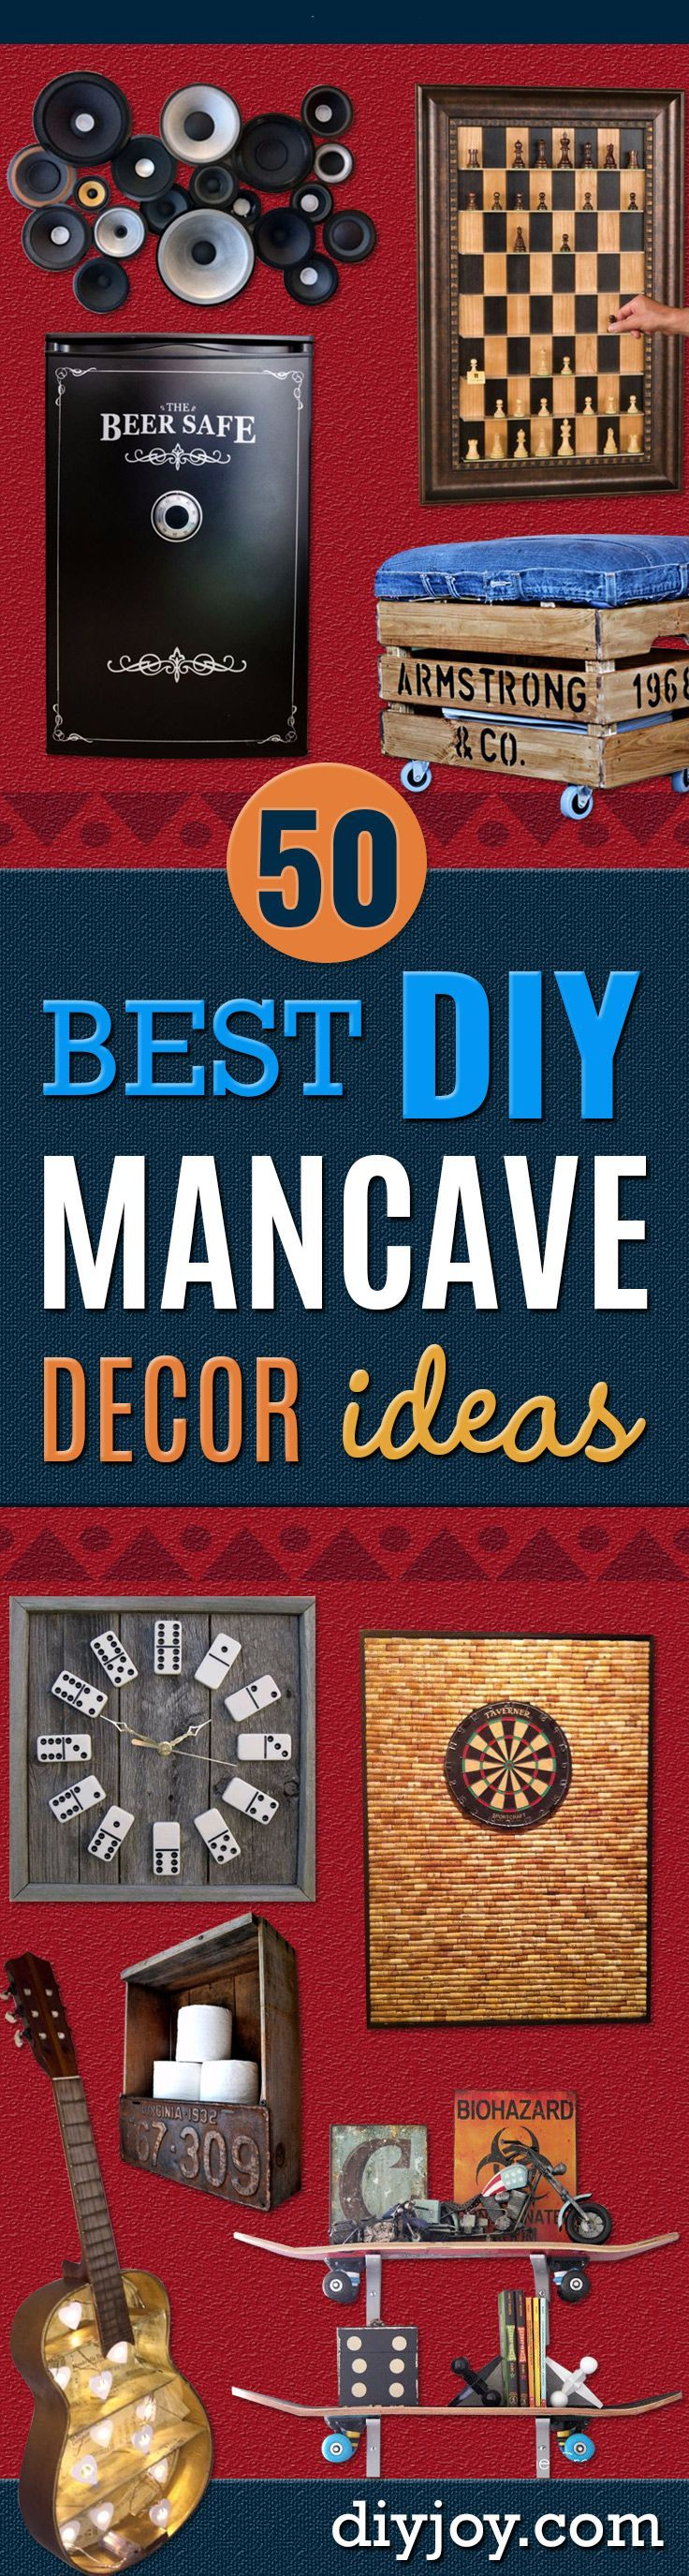 Garage Man Cave Projects : Best cool diy ideas images on pinterest creative